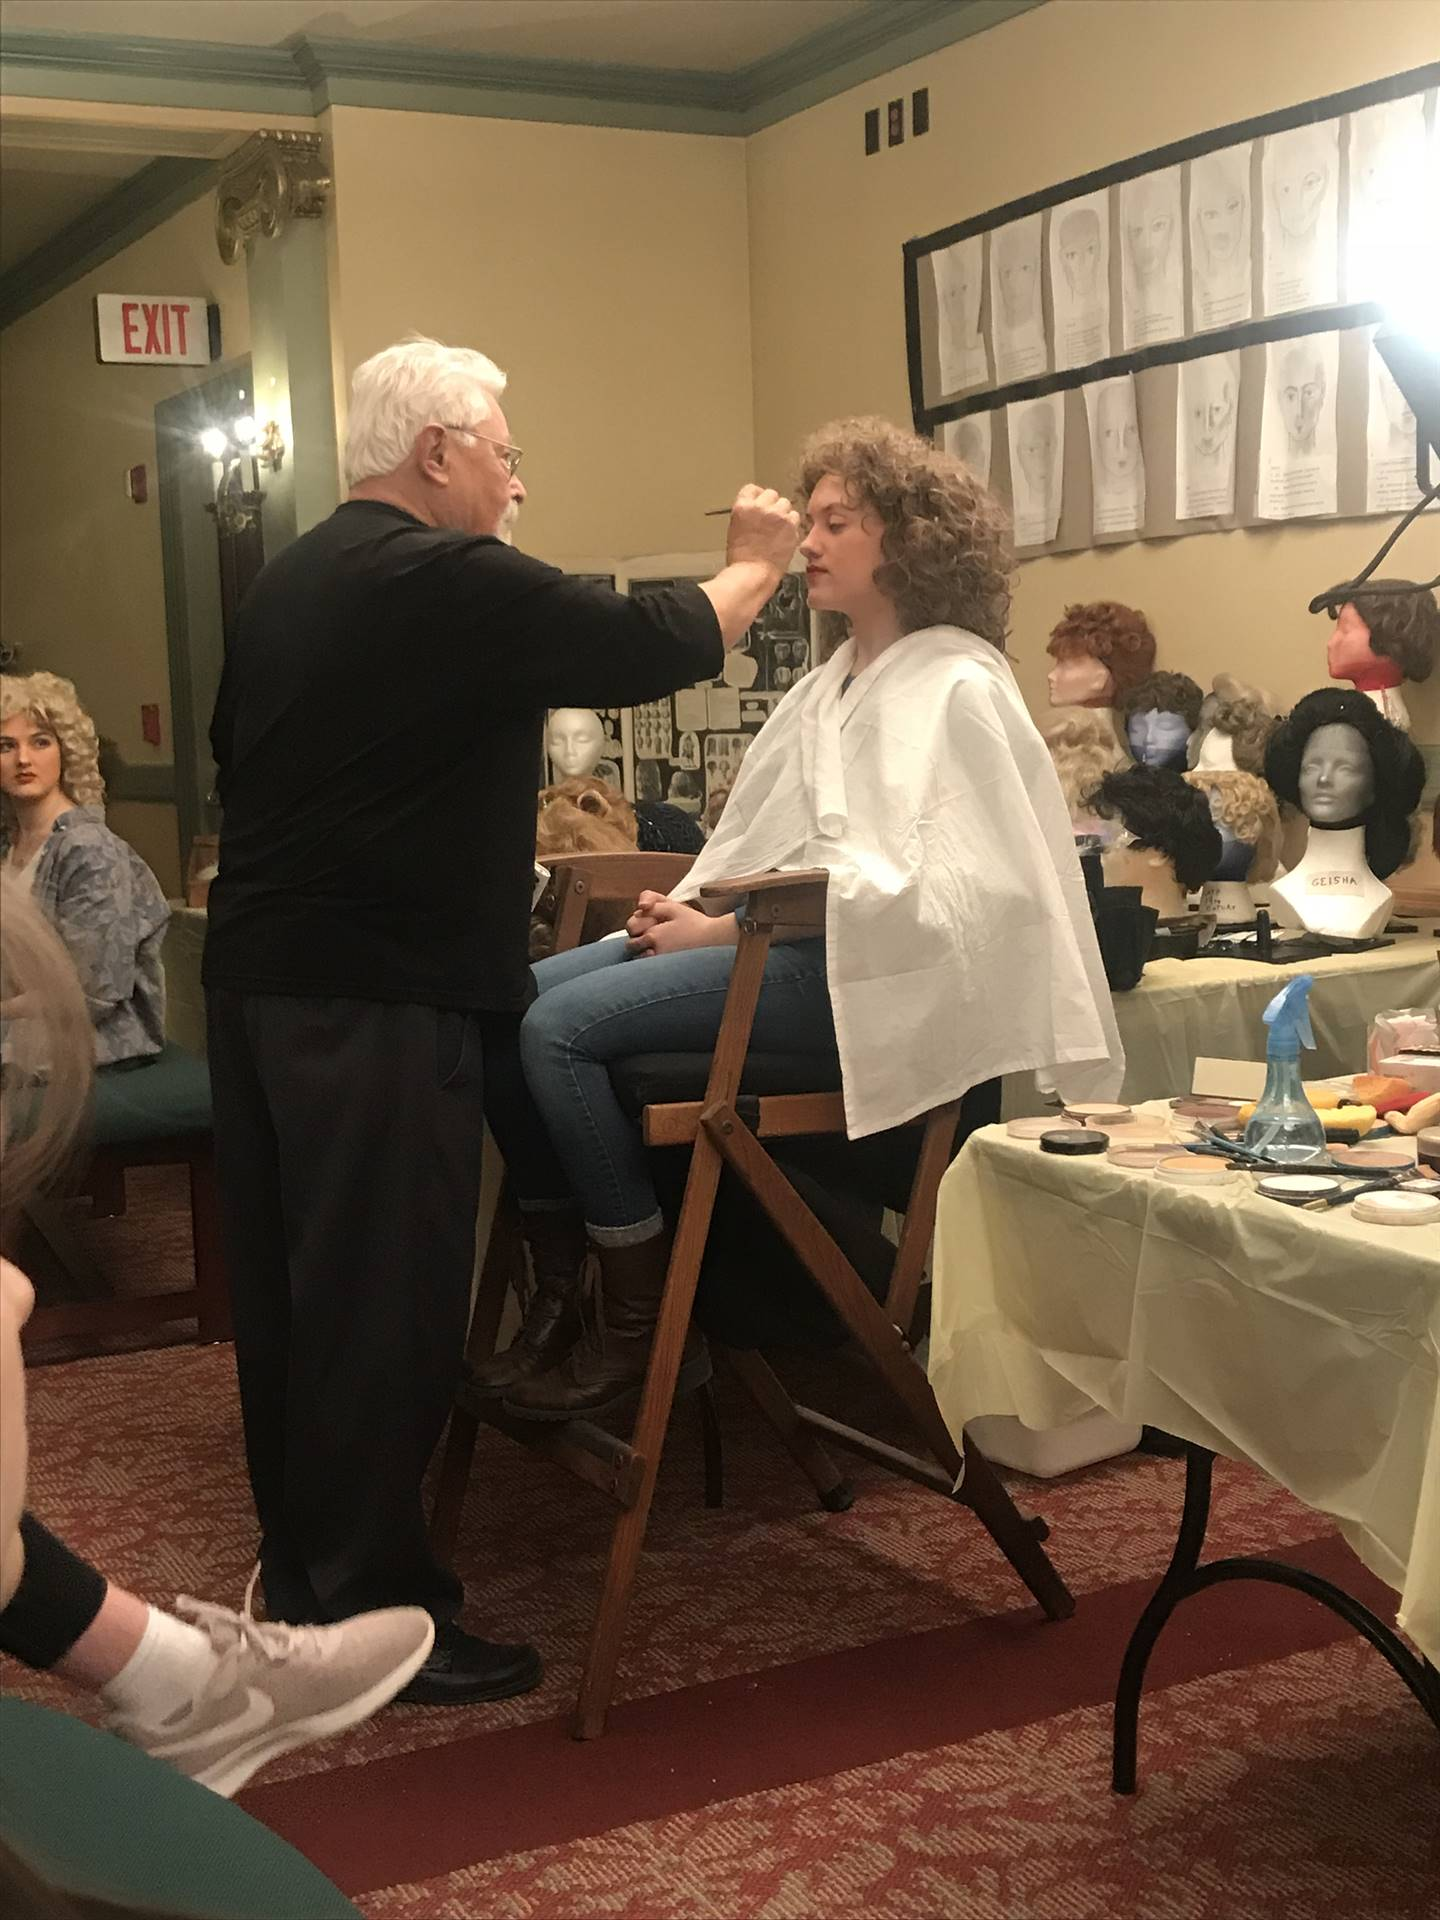 Theater arts workshop - Makeup and hair